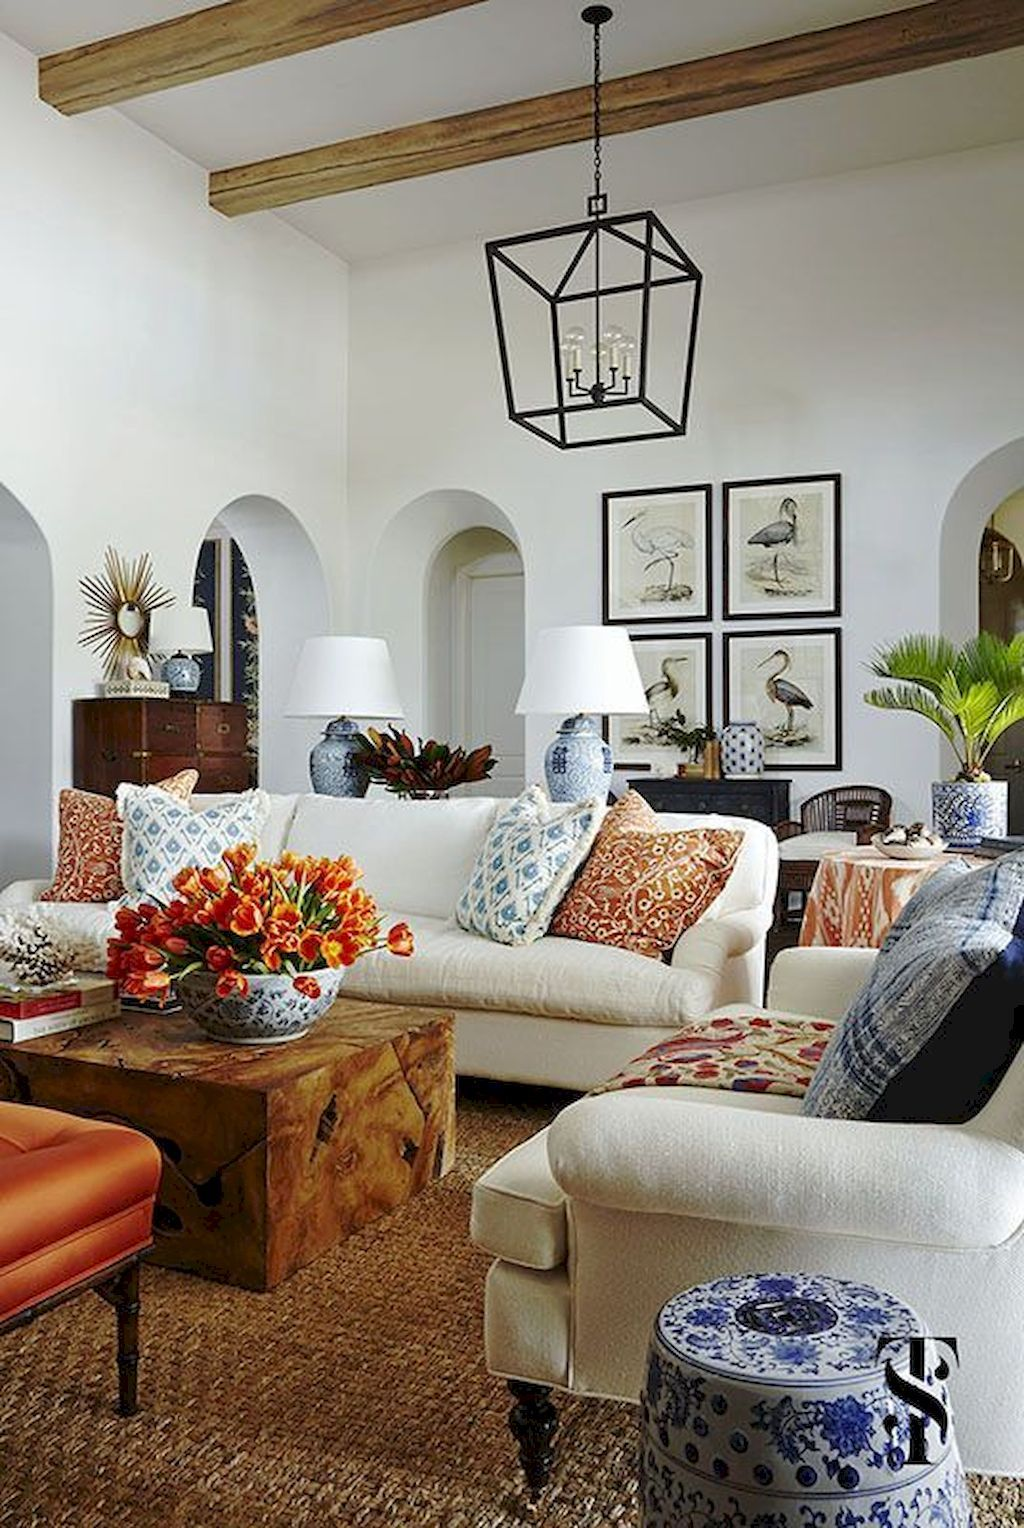 85 cozy farmhouse living room decor ideas farmhouse living room rh pinterest com